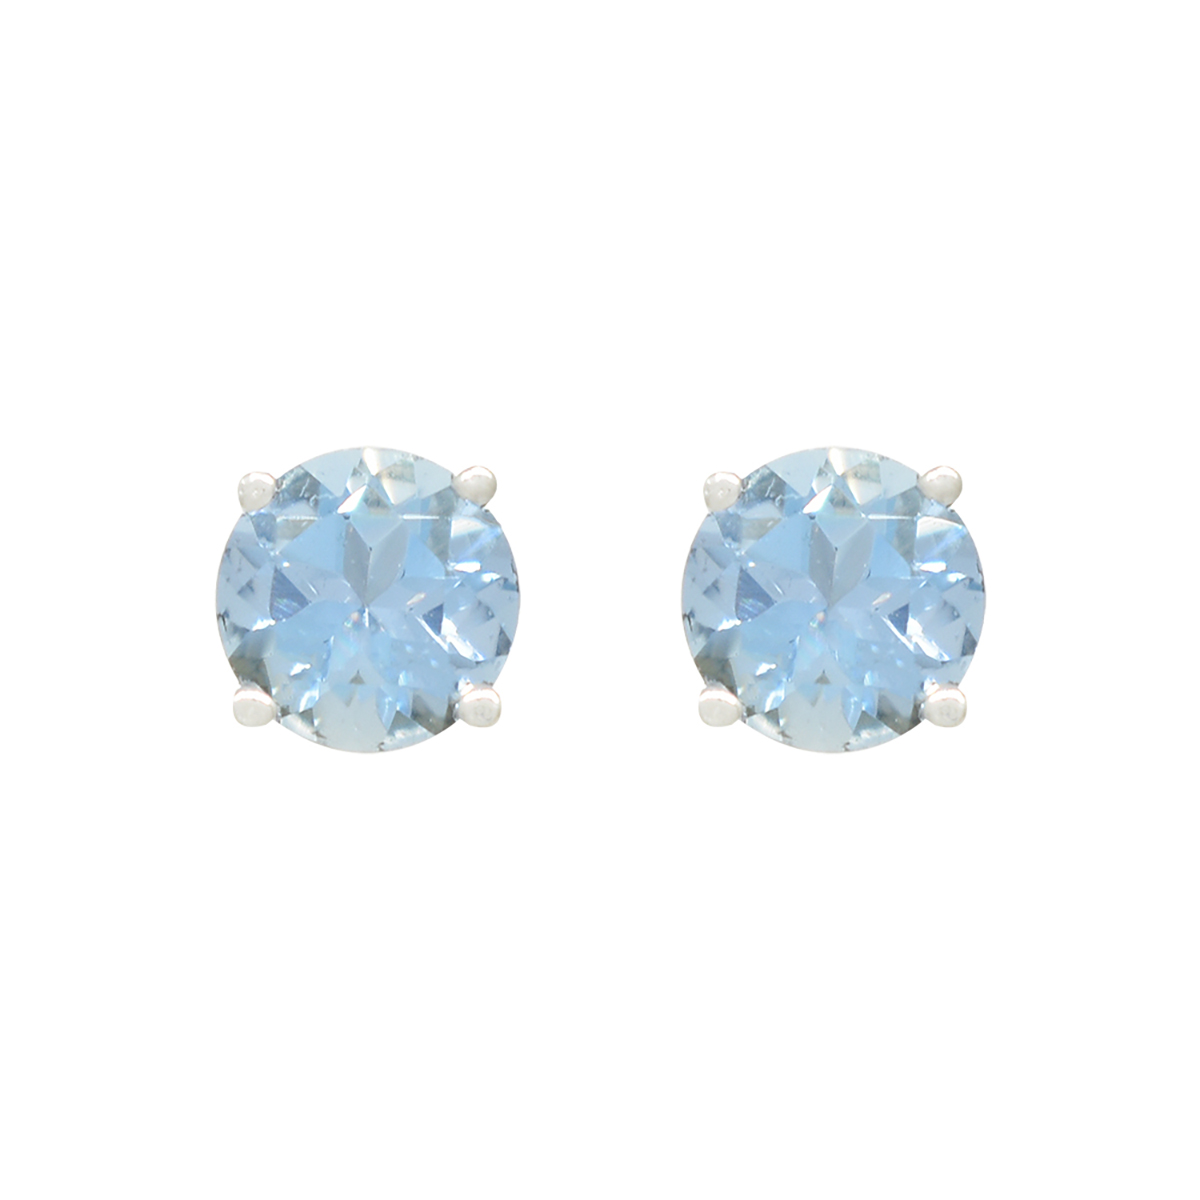 classic-stud-earrings-with-round-aquamarines-in-18k-white-gold